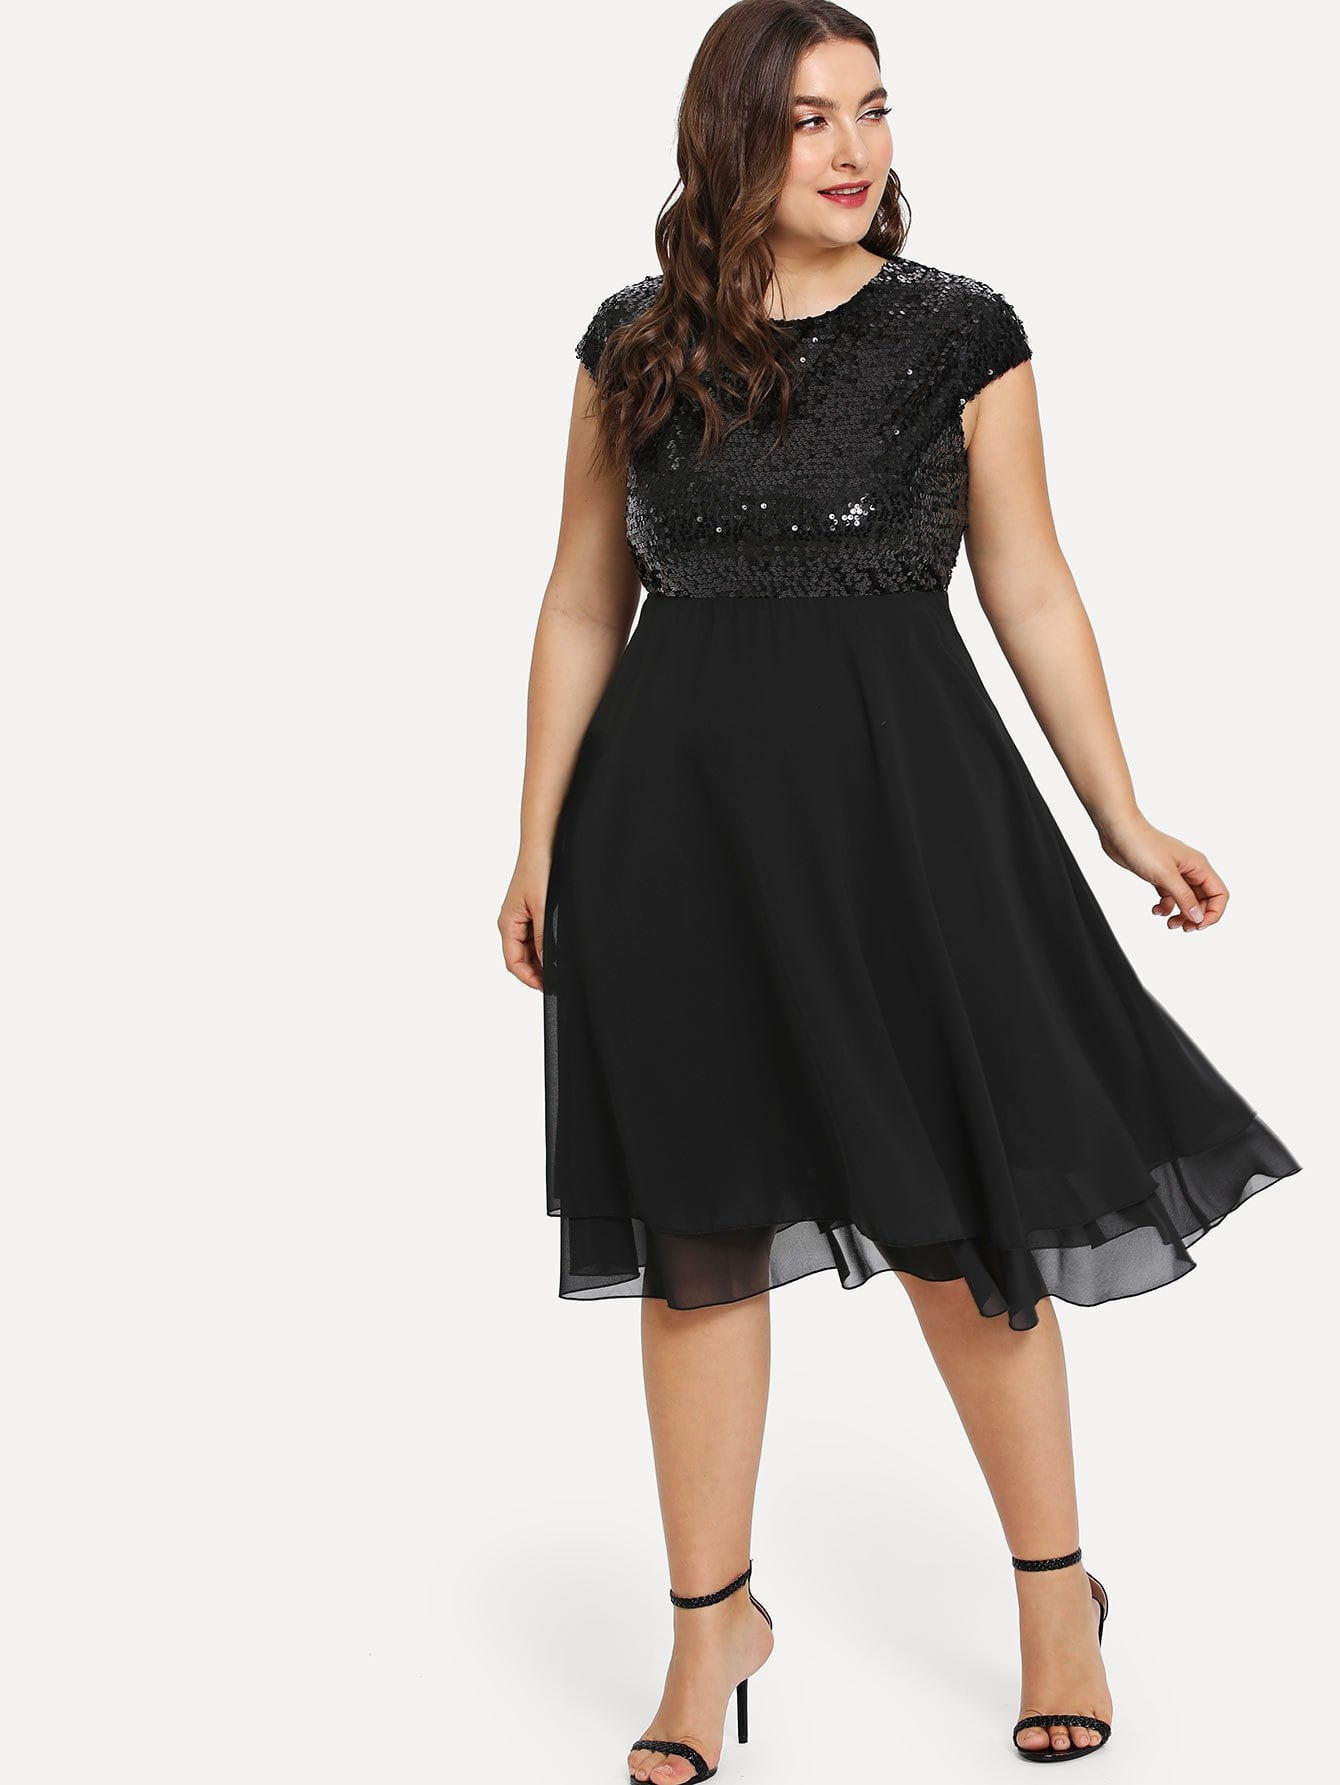 Plus Size Black Sequin Bodice Knee Length Dress | Plus Size Dresses ...